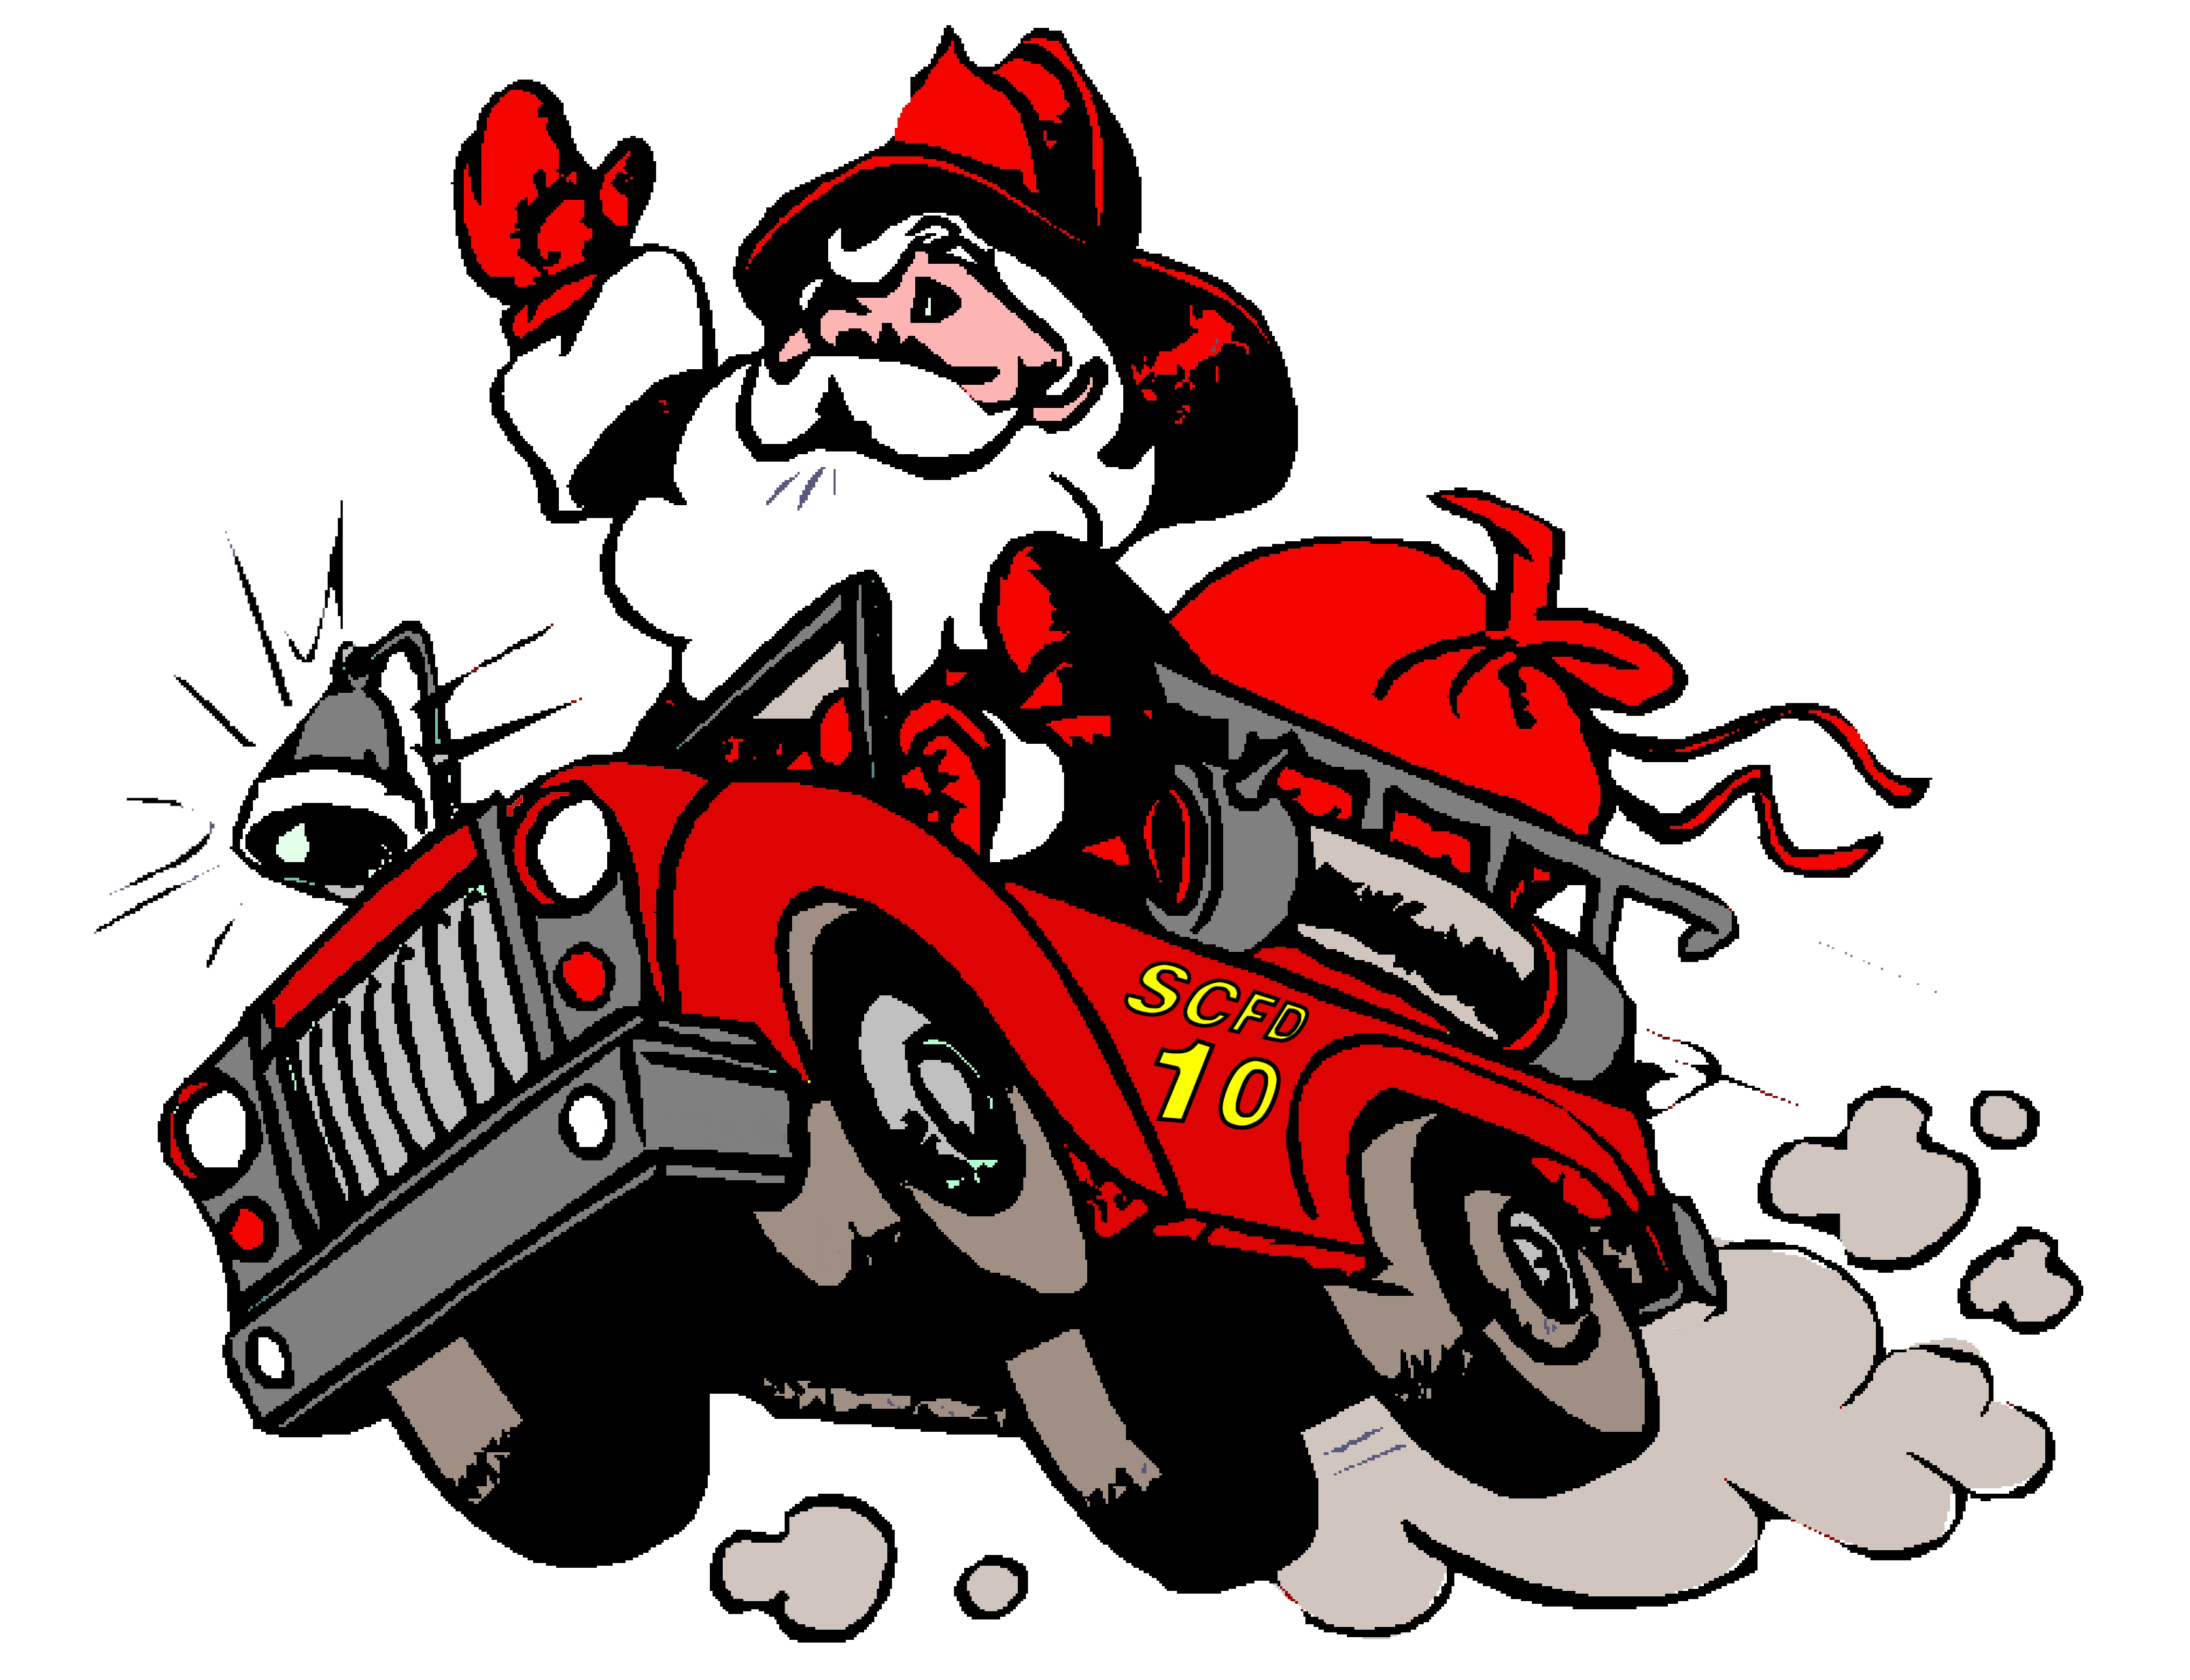 picture free download Fire engine clipart black and white. Firefighter prevention frames illustrations